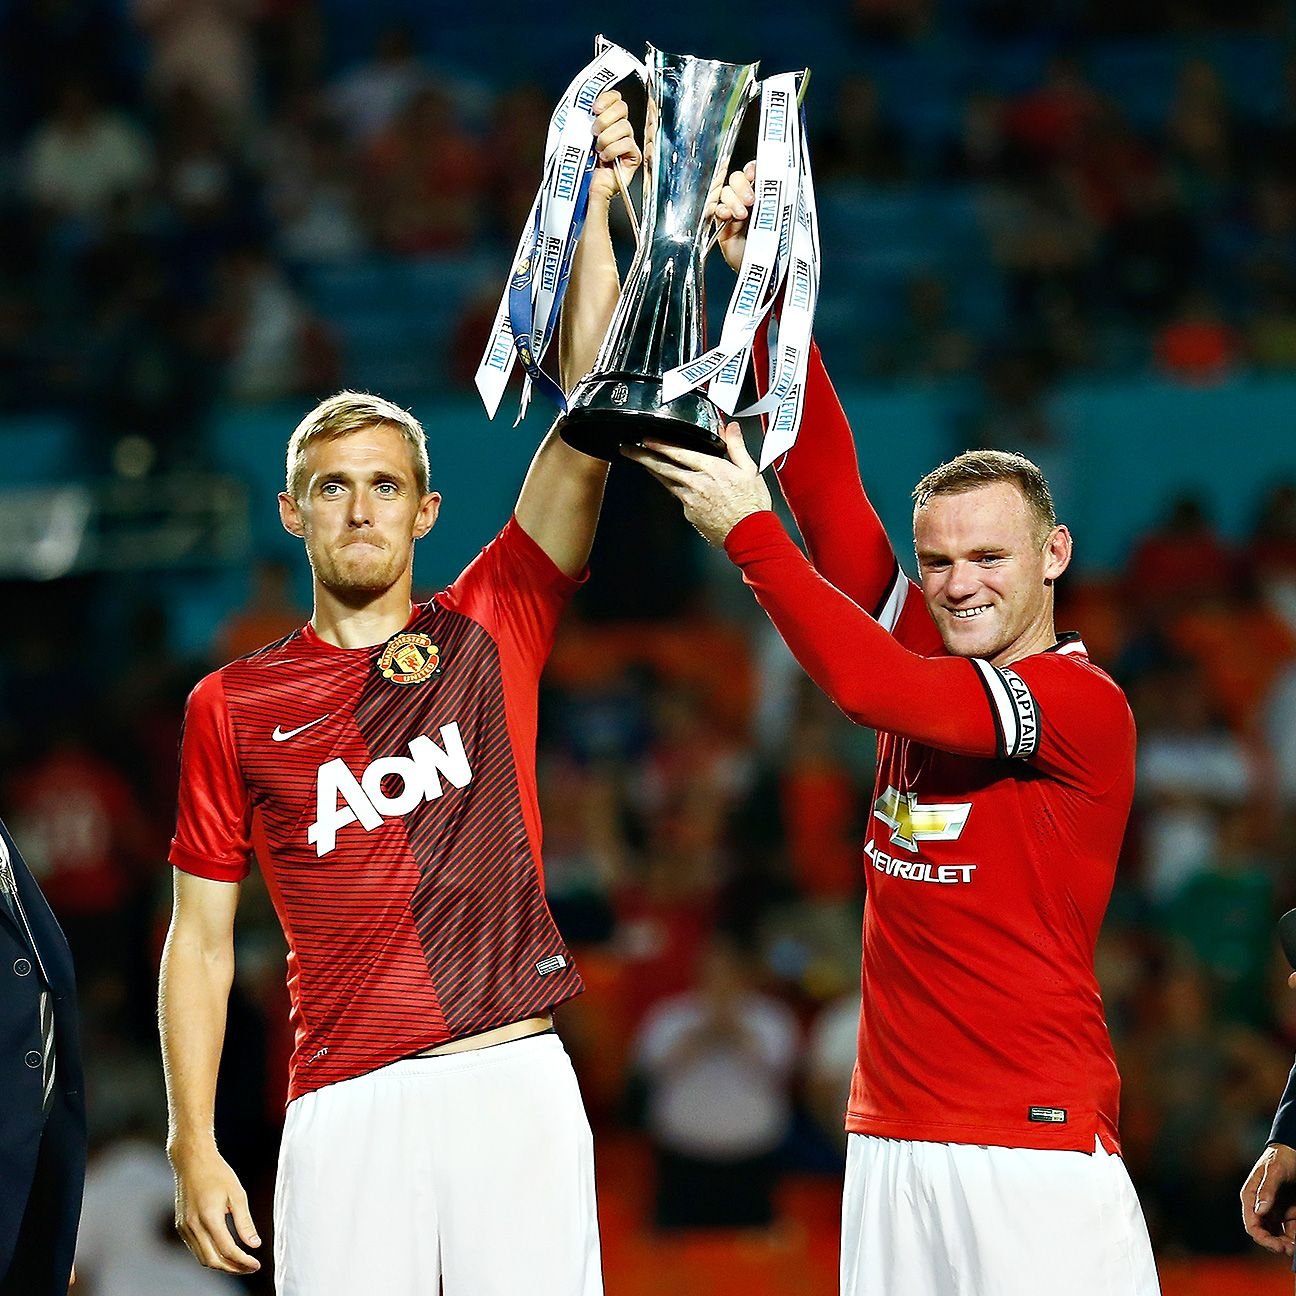 United won the 2014 ICC, a tournament designed to enhance European teams, not U.S. soccer.